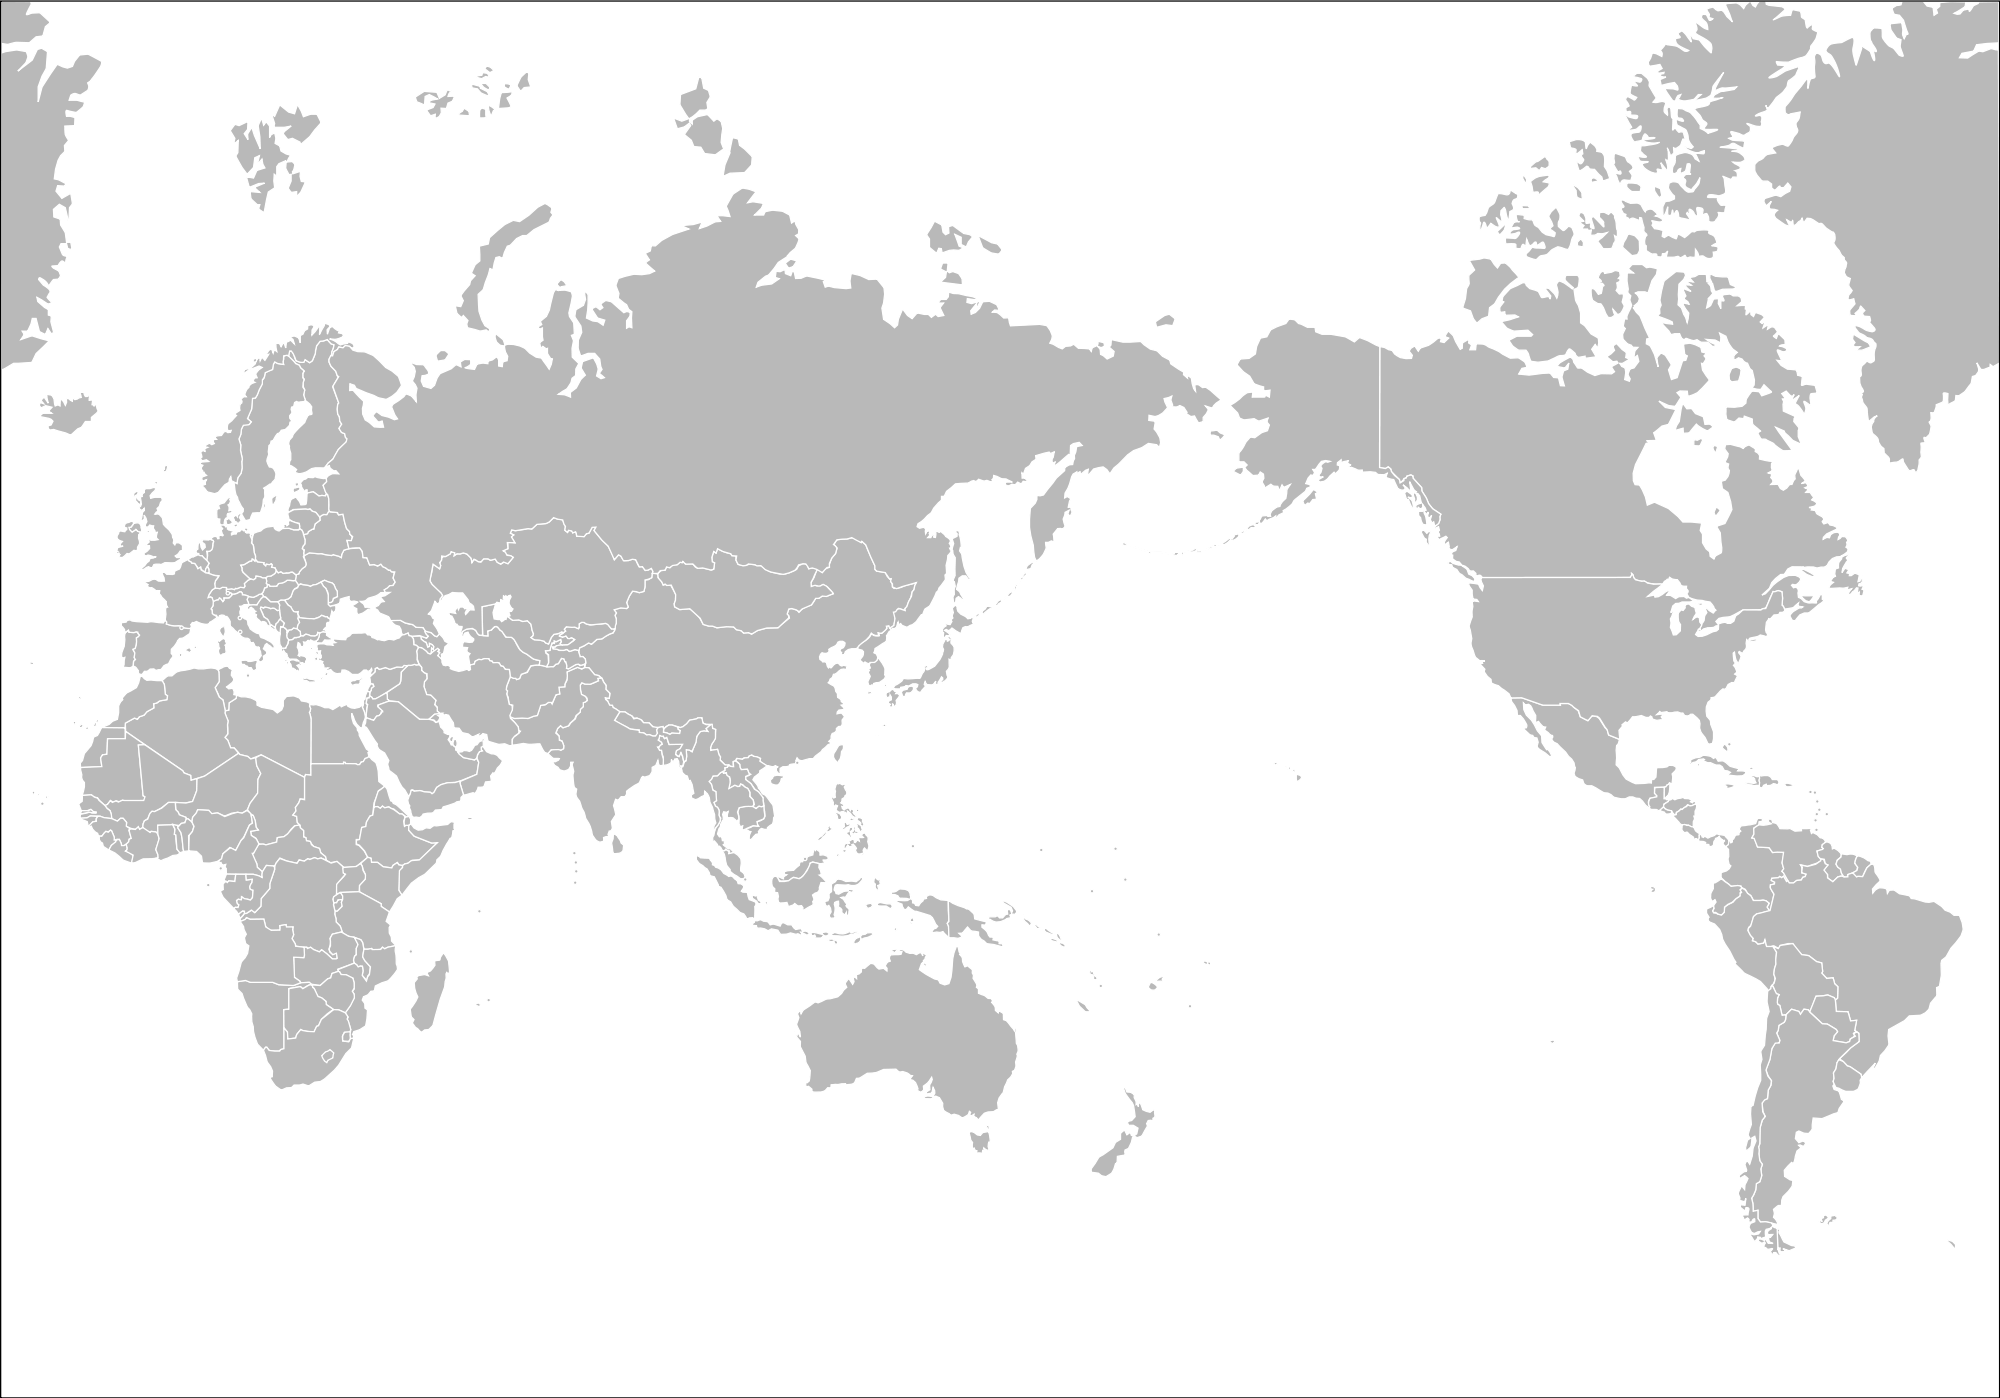 Blank World Map Png.Blank World Map Png 6 Png Image